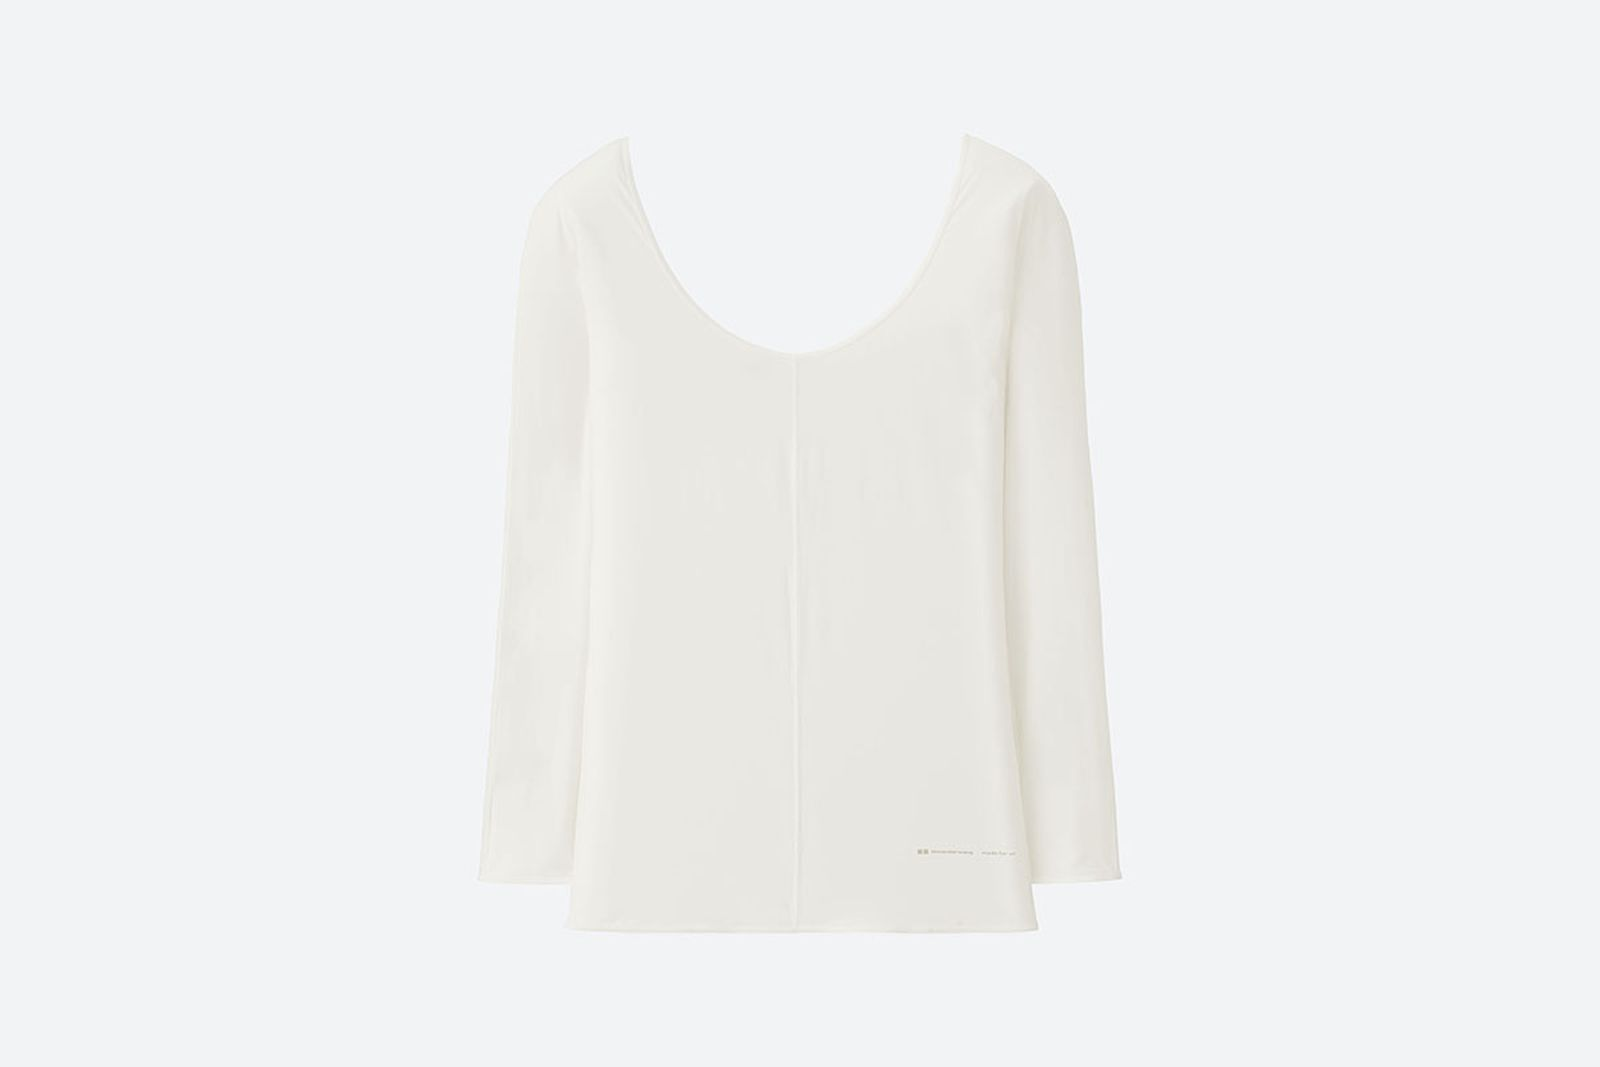 alexander wang uniqlo airism collection